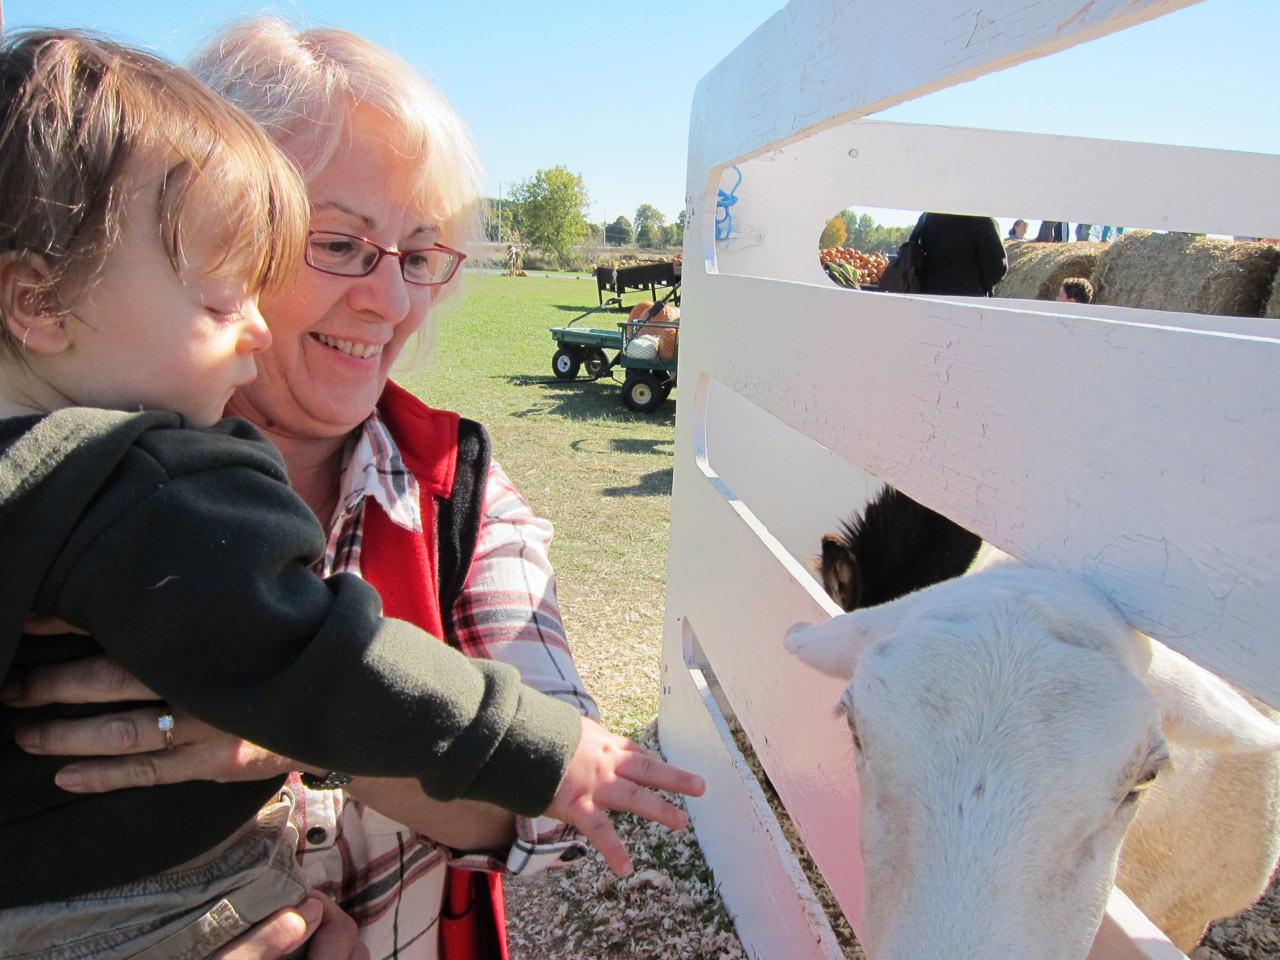 Nana and Boo at the petting zoo